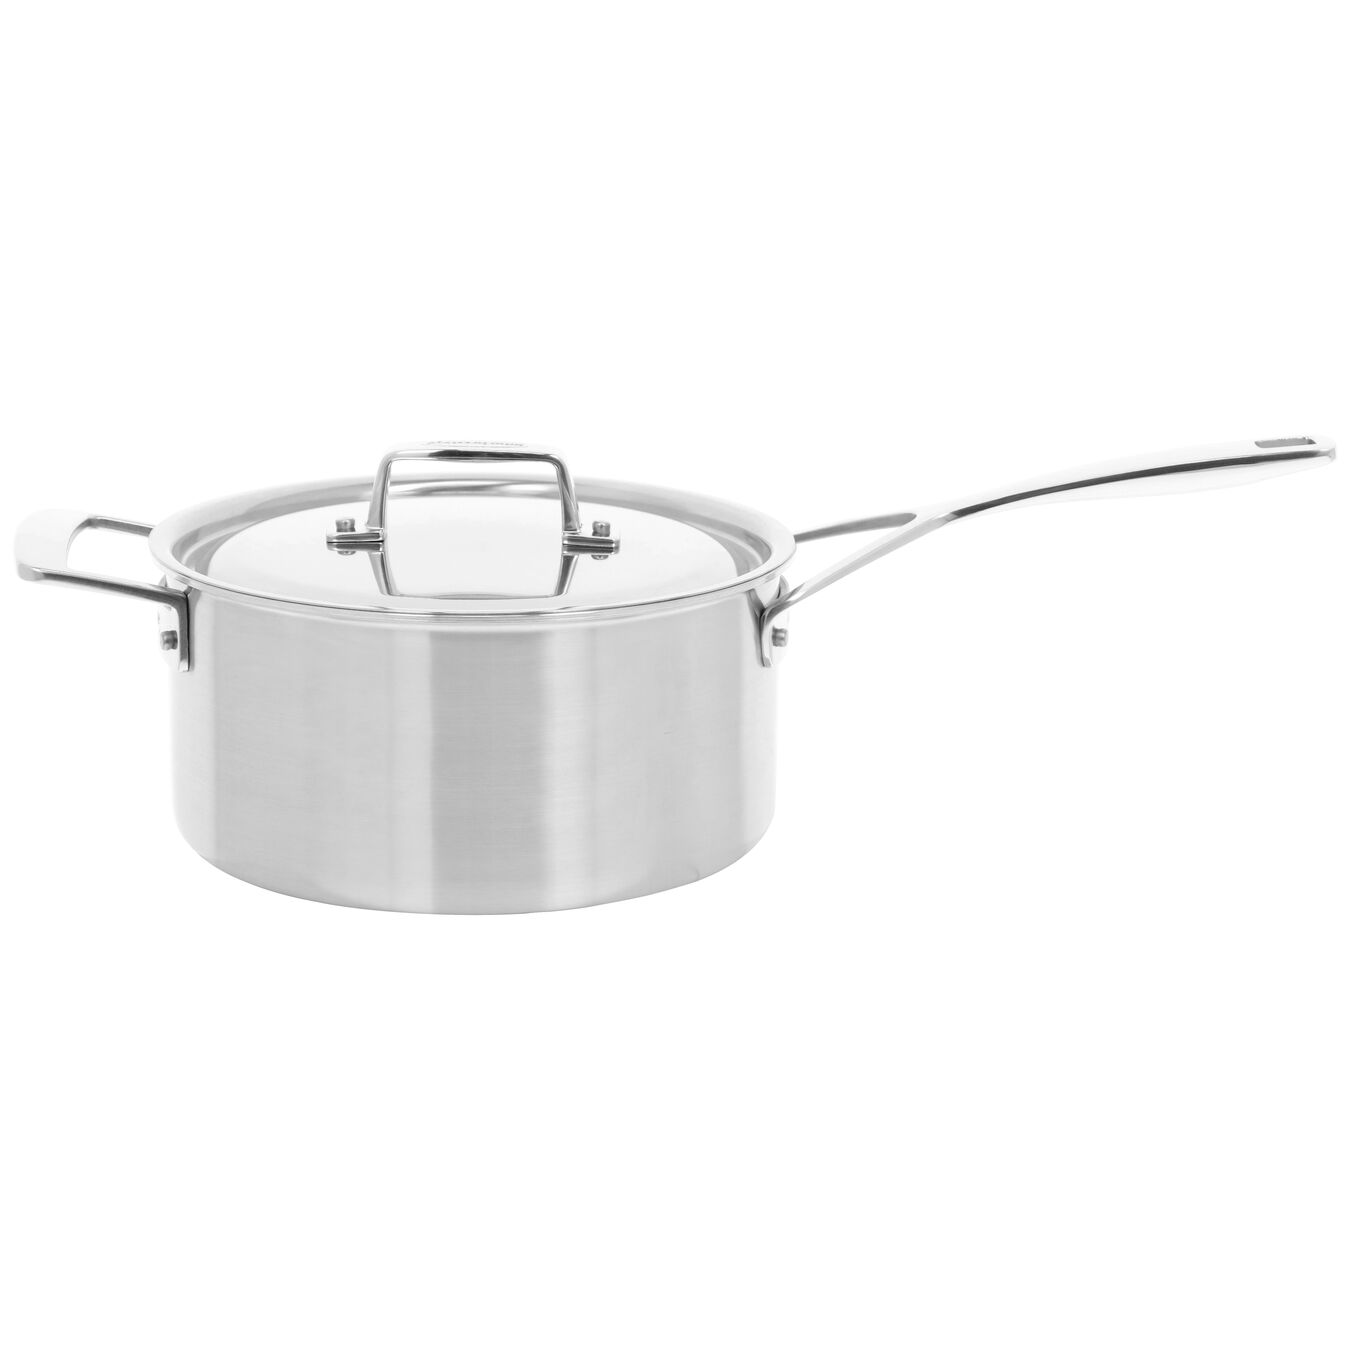 3.8 l round sauce pan with lid 4QT, silver,,large 2